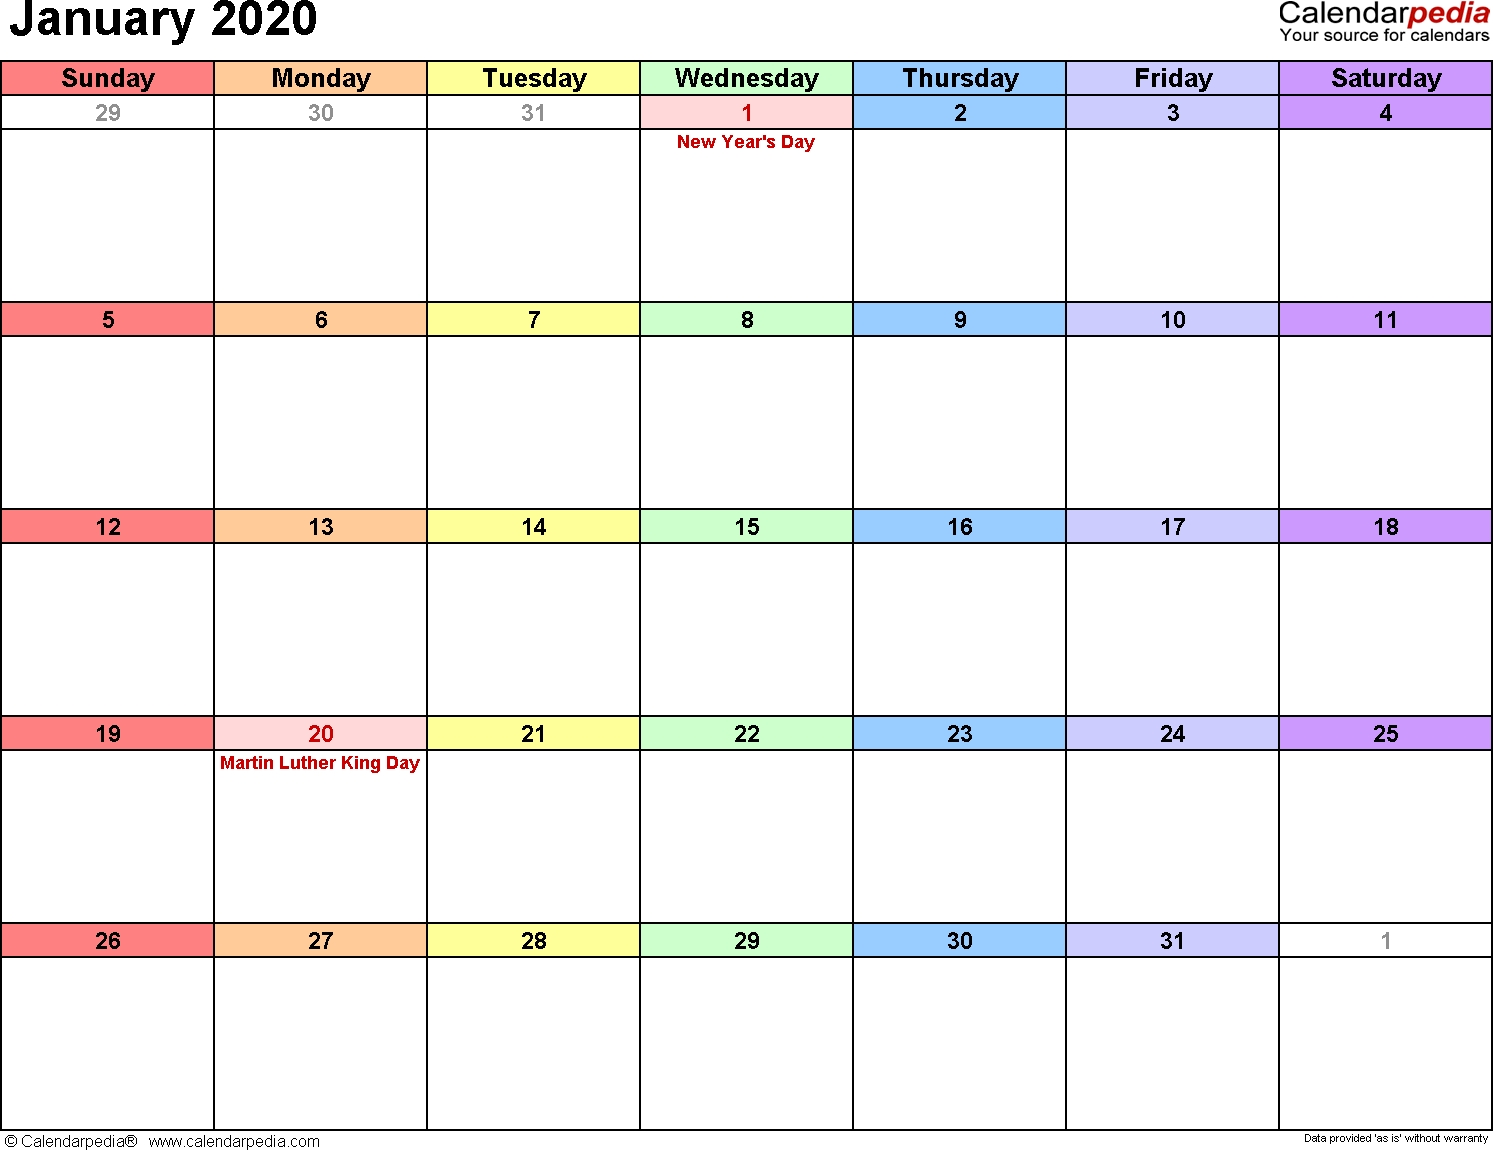 January 2020 Calendars For Word, Excel & Pdf Free Printable Calendar January 2020